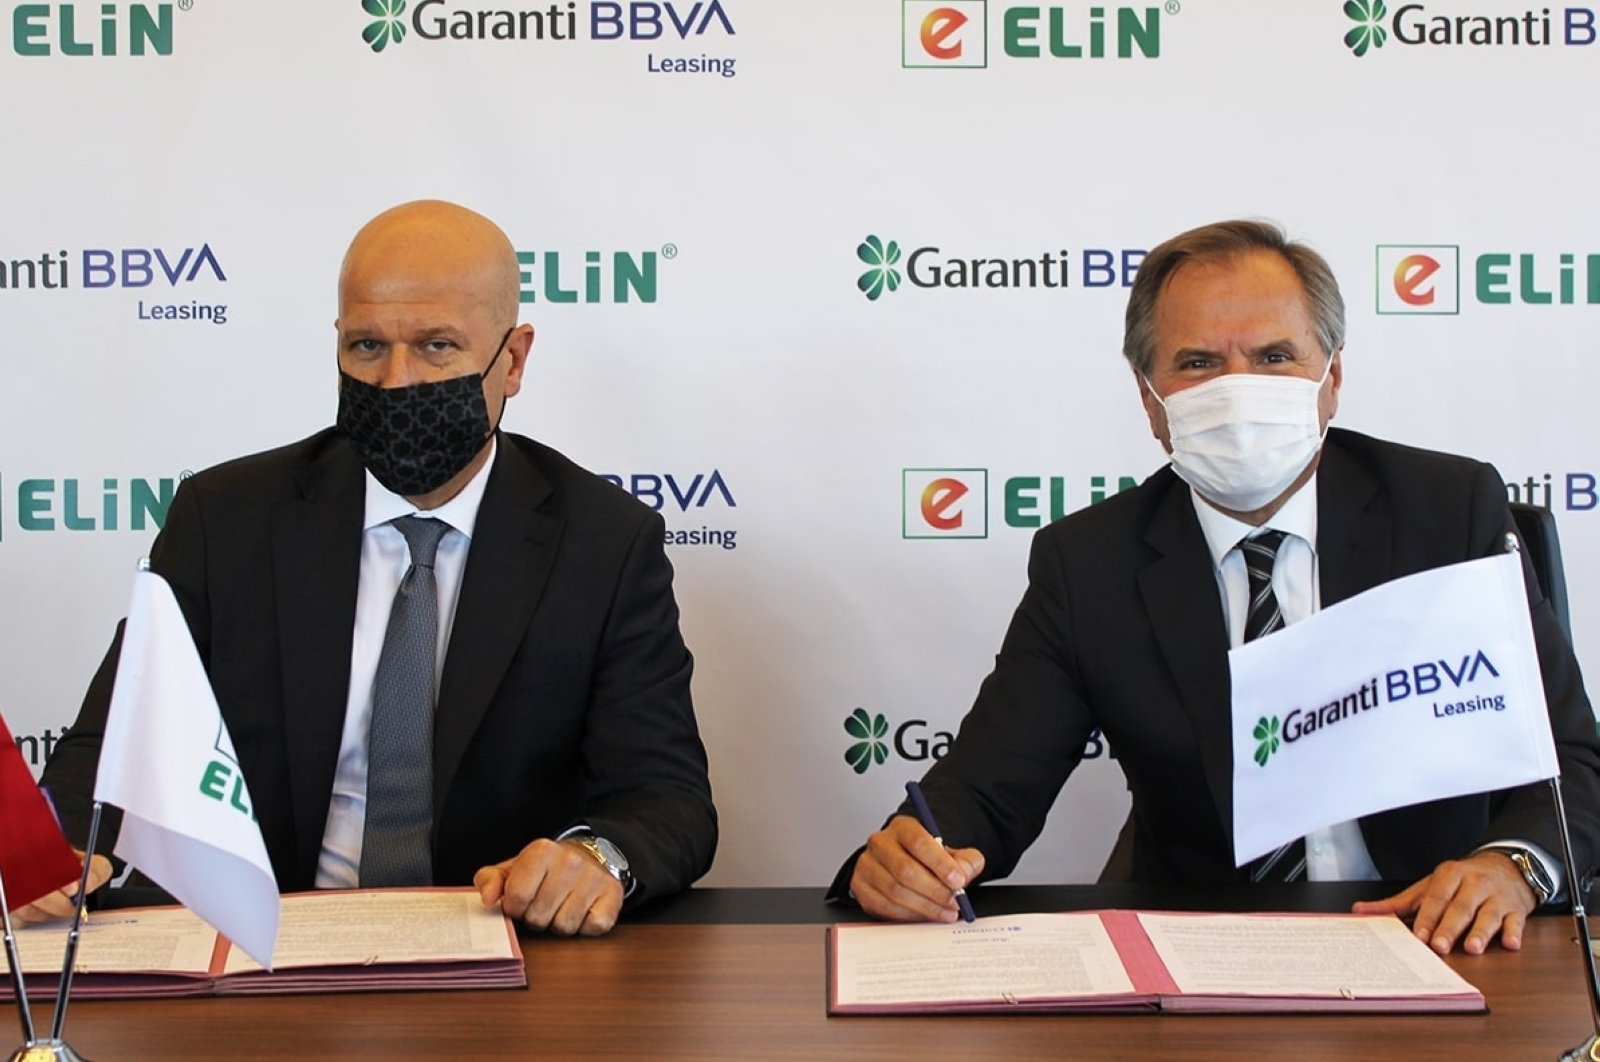 Garanti BBVA Leasing Chief Executive Ünal Gökmen (R) and Elin Energy Board Member Murat Karakeçili pose for a photo before signing the cooperation protocol in Istanbul, Sept. 14, 2020. (AA Photo)